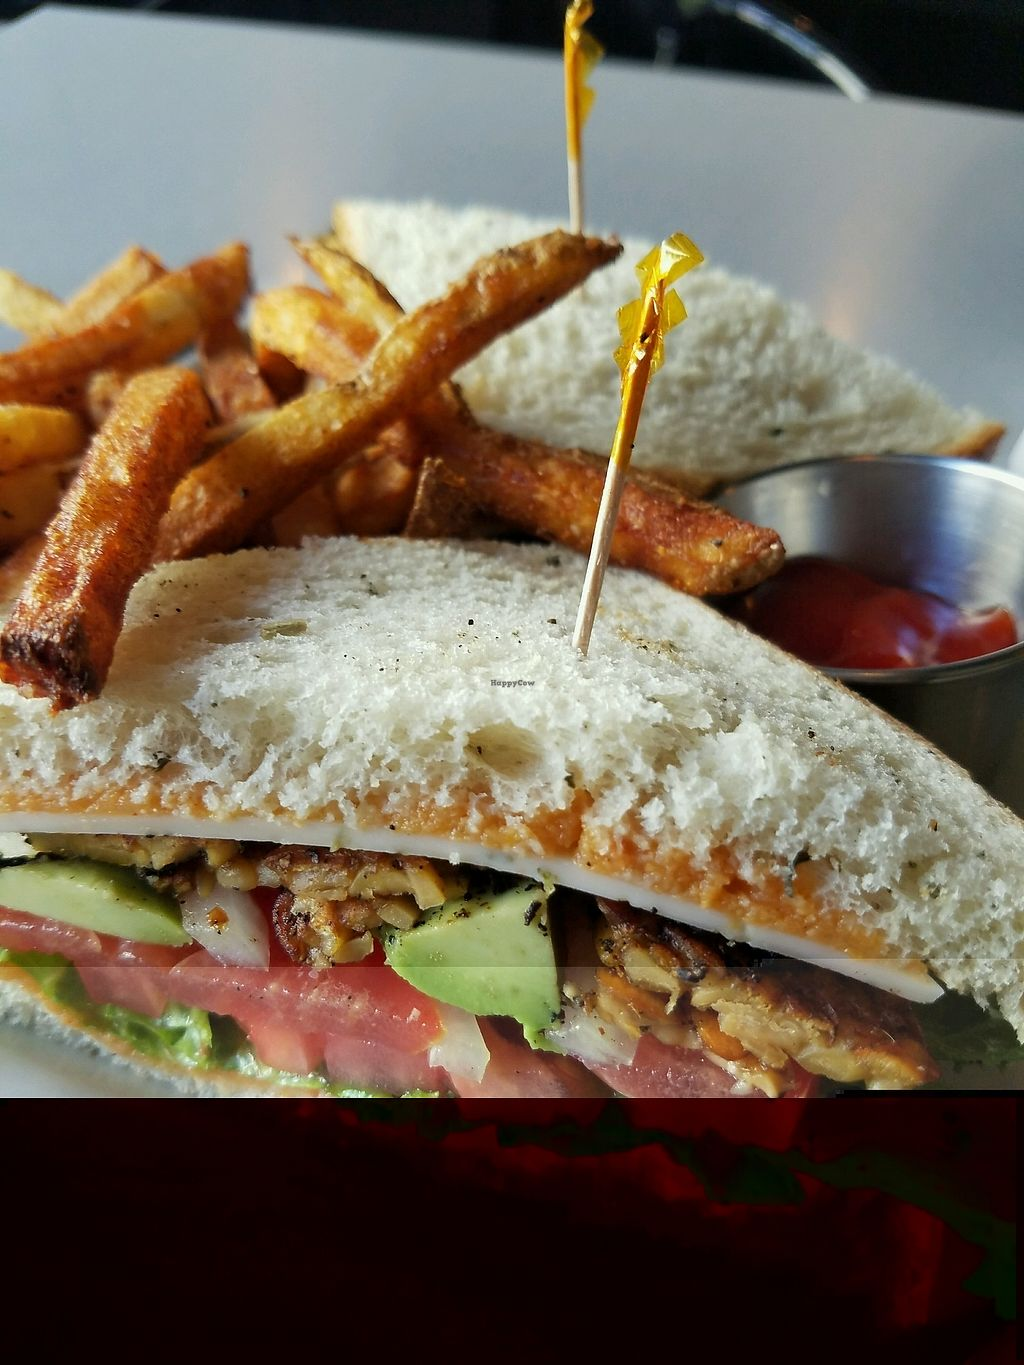 """Photo of Green House Cafe  by <a href=""""/members/profile/andreathinks"""">andreathinks</a> <br/>Spicy Tempeh Sandwich with Cajun Fries <br/> September 8, 2017  - <a href='/contact/abuse/image/81334/302201'>Report</a>"""